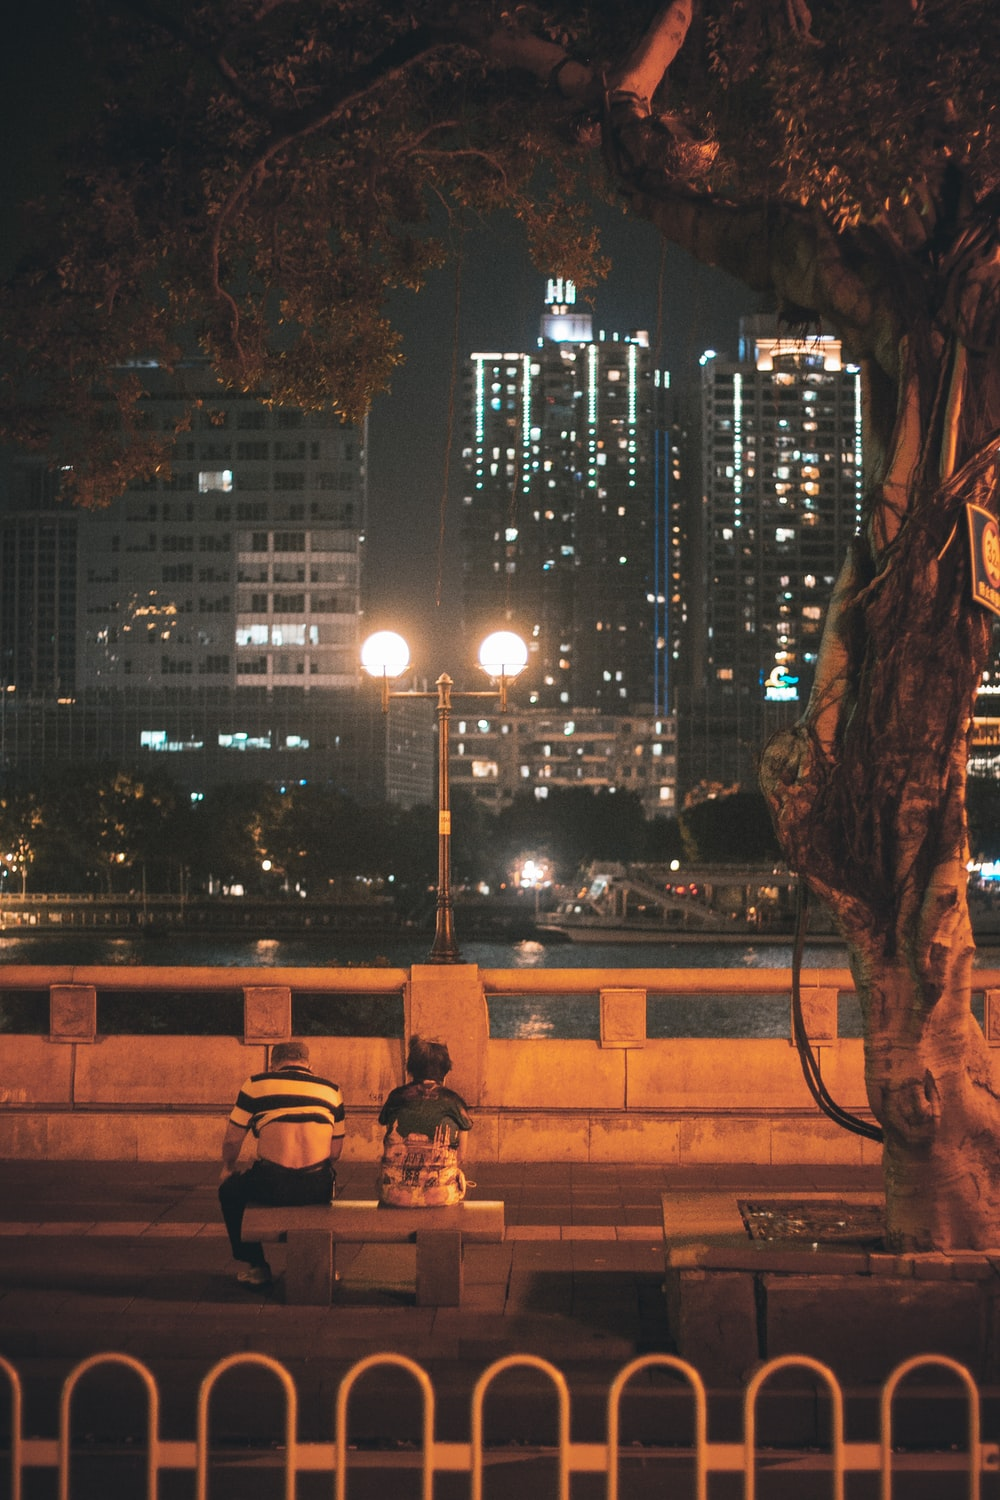 2 person sitting on bench near city buildings during night time